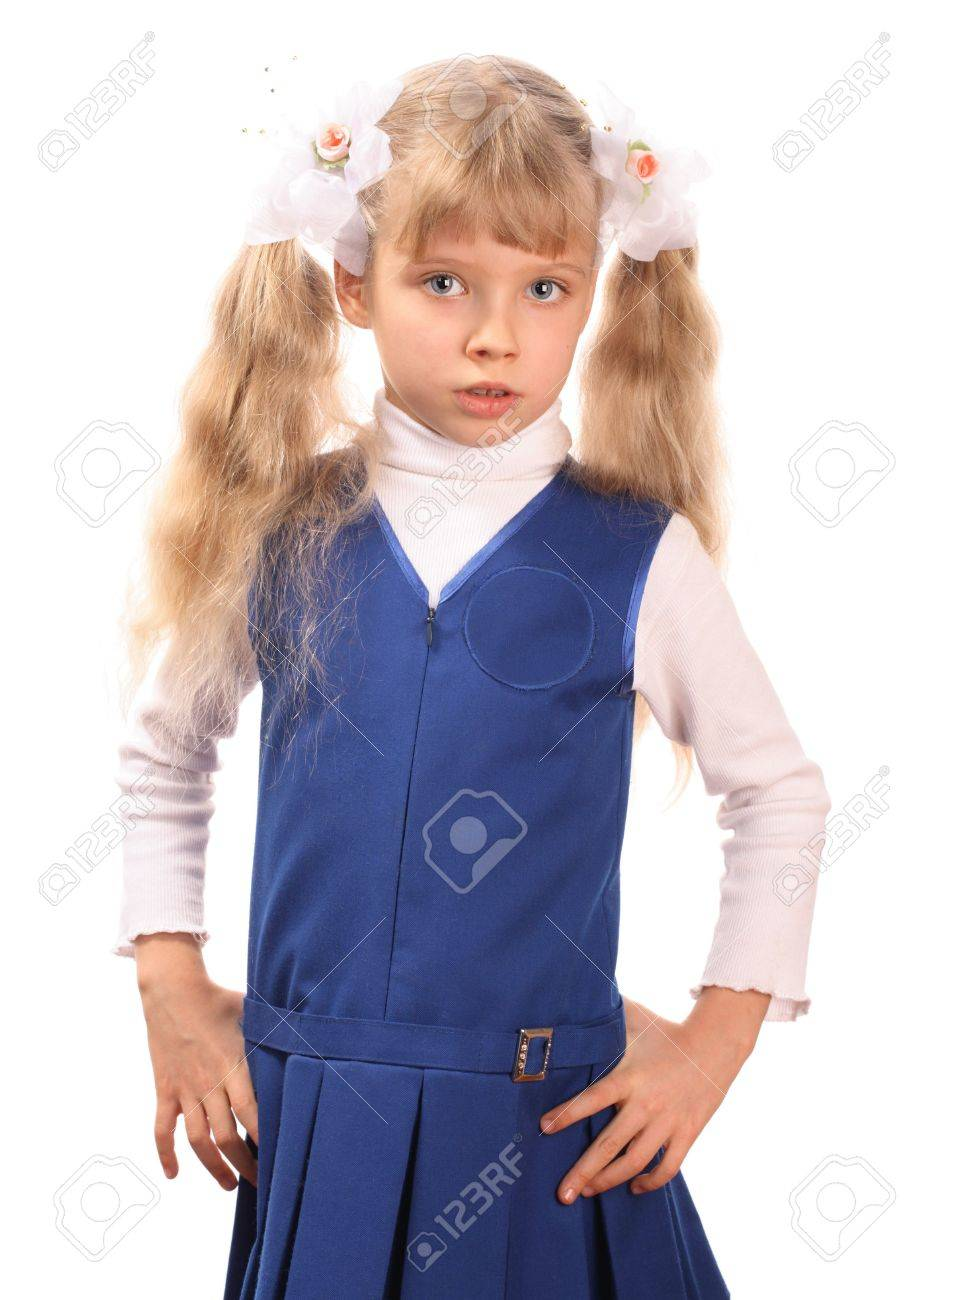 A schoolgirl is in dark blue clothes. Stock Photo - 2513719